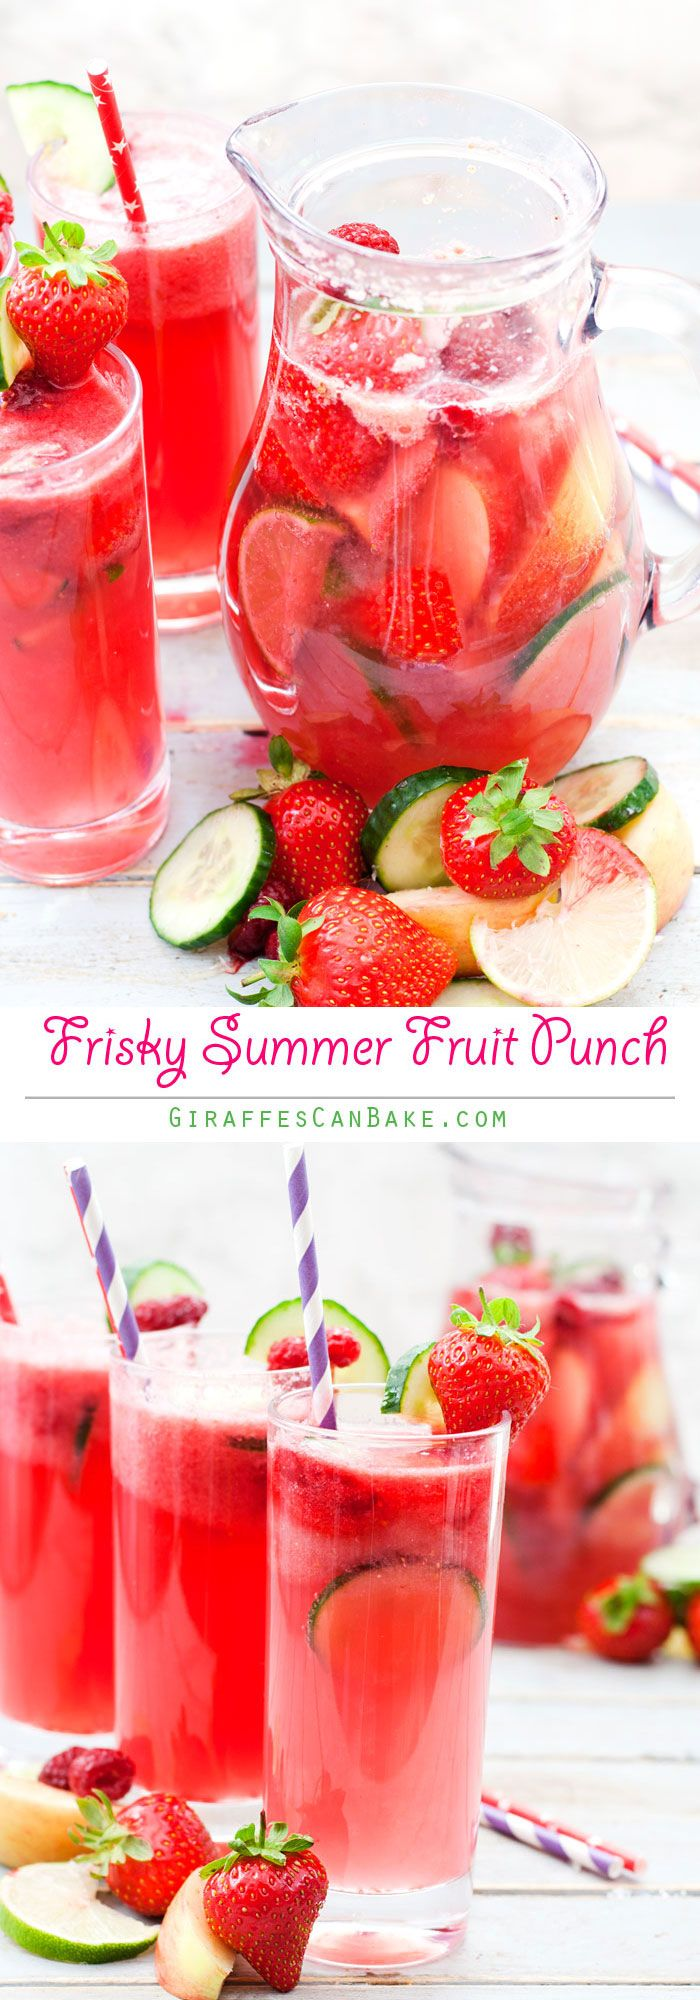 Frisky Summer Punch - a delicious fruit punch made with cucumber and apple bison grass vodka, prosecco and fruit. The perfect summer drink for parties, BBQ's and more. It's so quick and easy to make, you'll be making this punch all summer long!